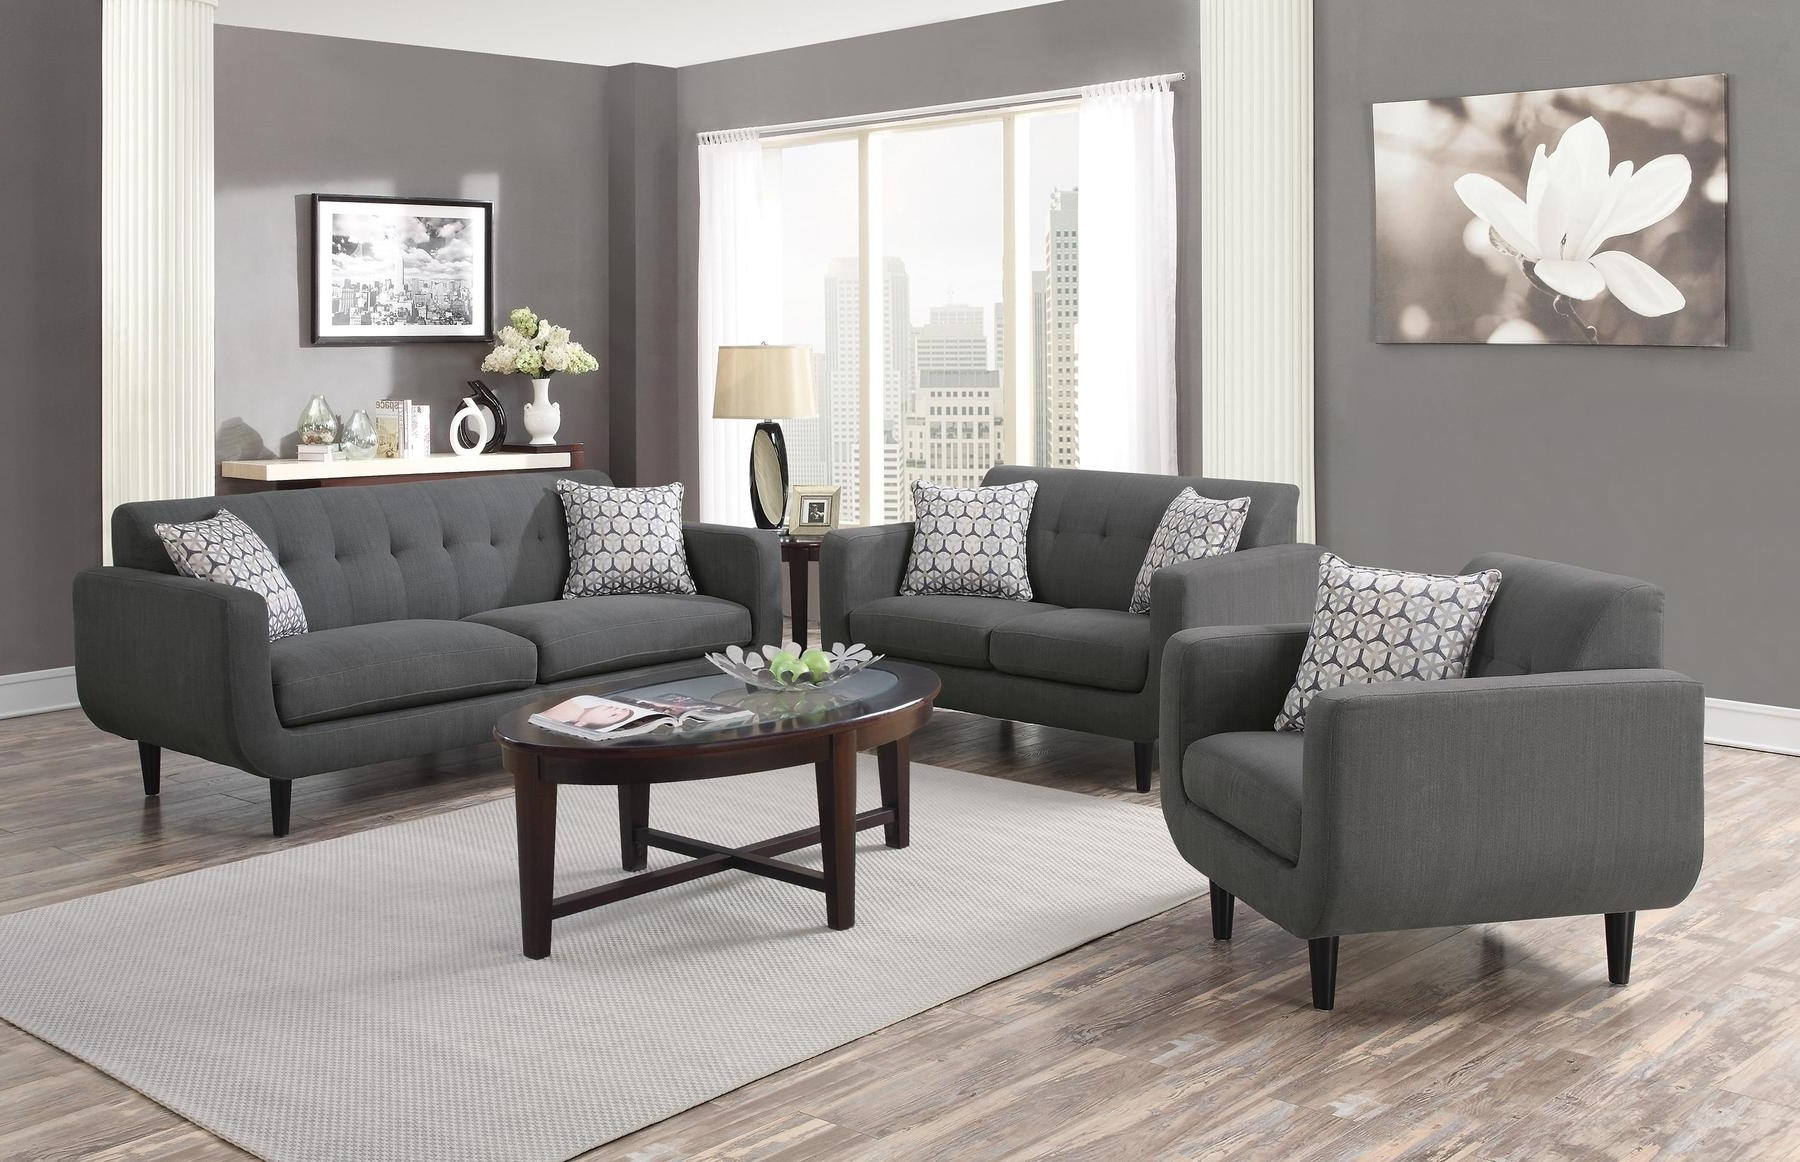 2019 Fabric Sofas For Stansall Gray Sofa 505201 Coaster Furniture Fabric Sofas At (View 1 of 20)